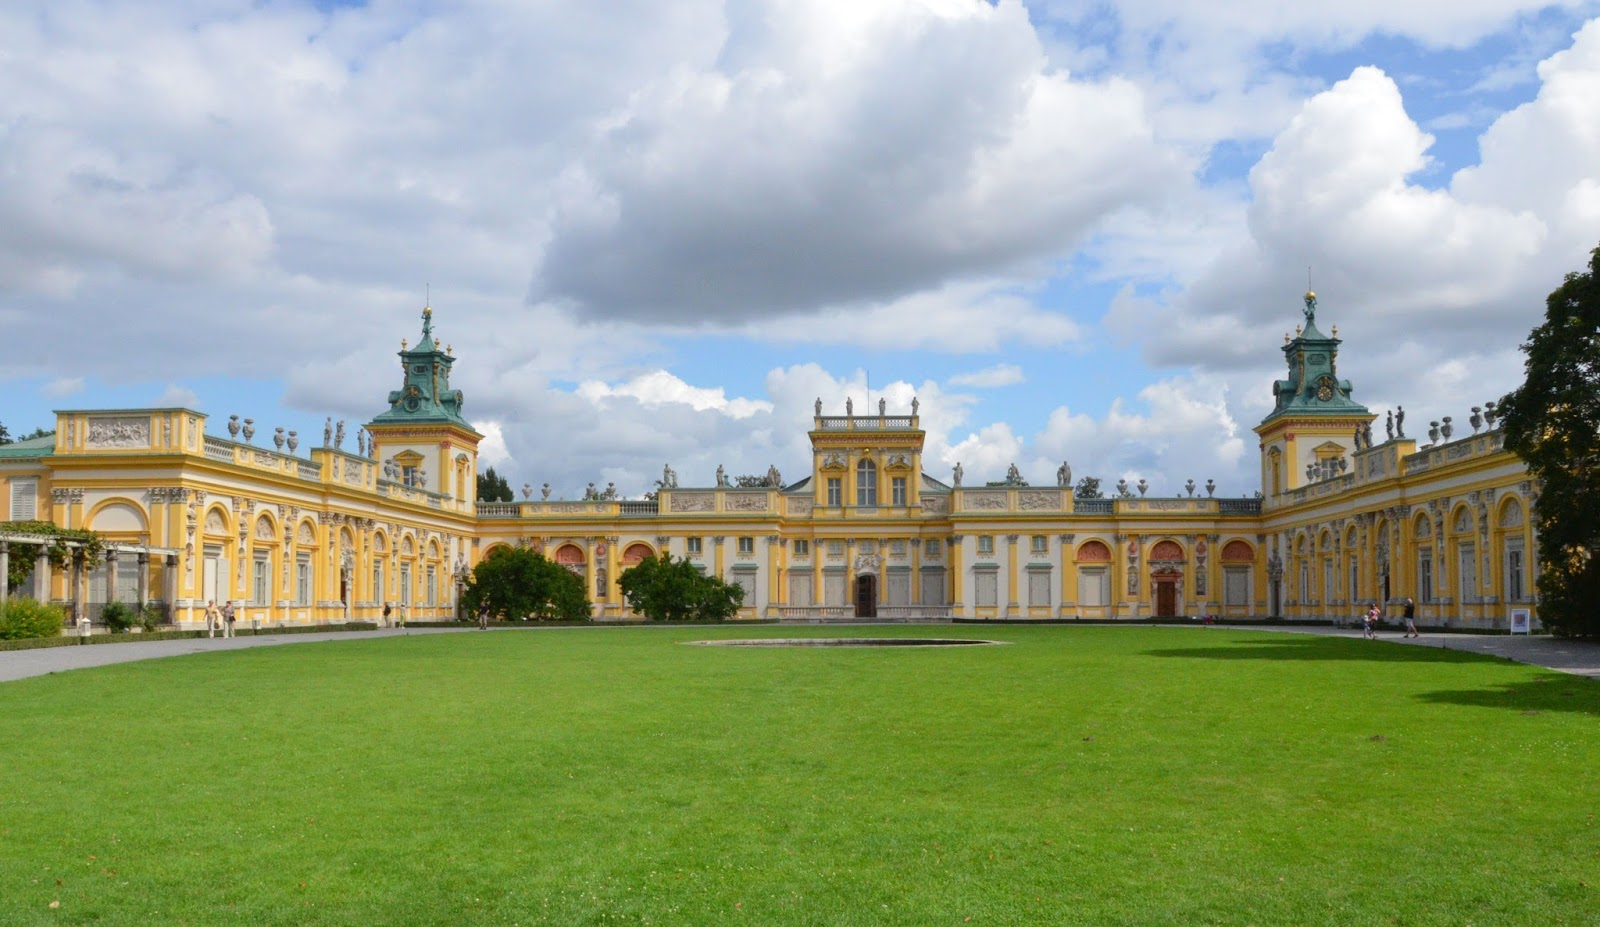 Church of St Mary Magdalene Wrocław, Warsaw, Wilanow Palace | Maggy and Adam's Amazing European Adventure